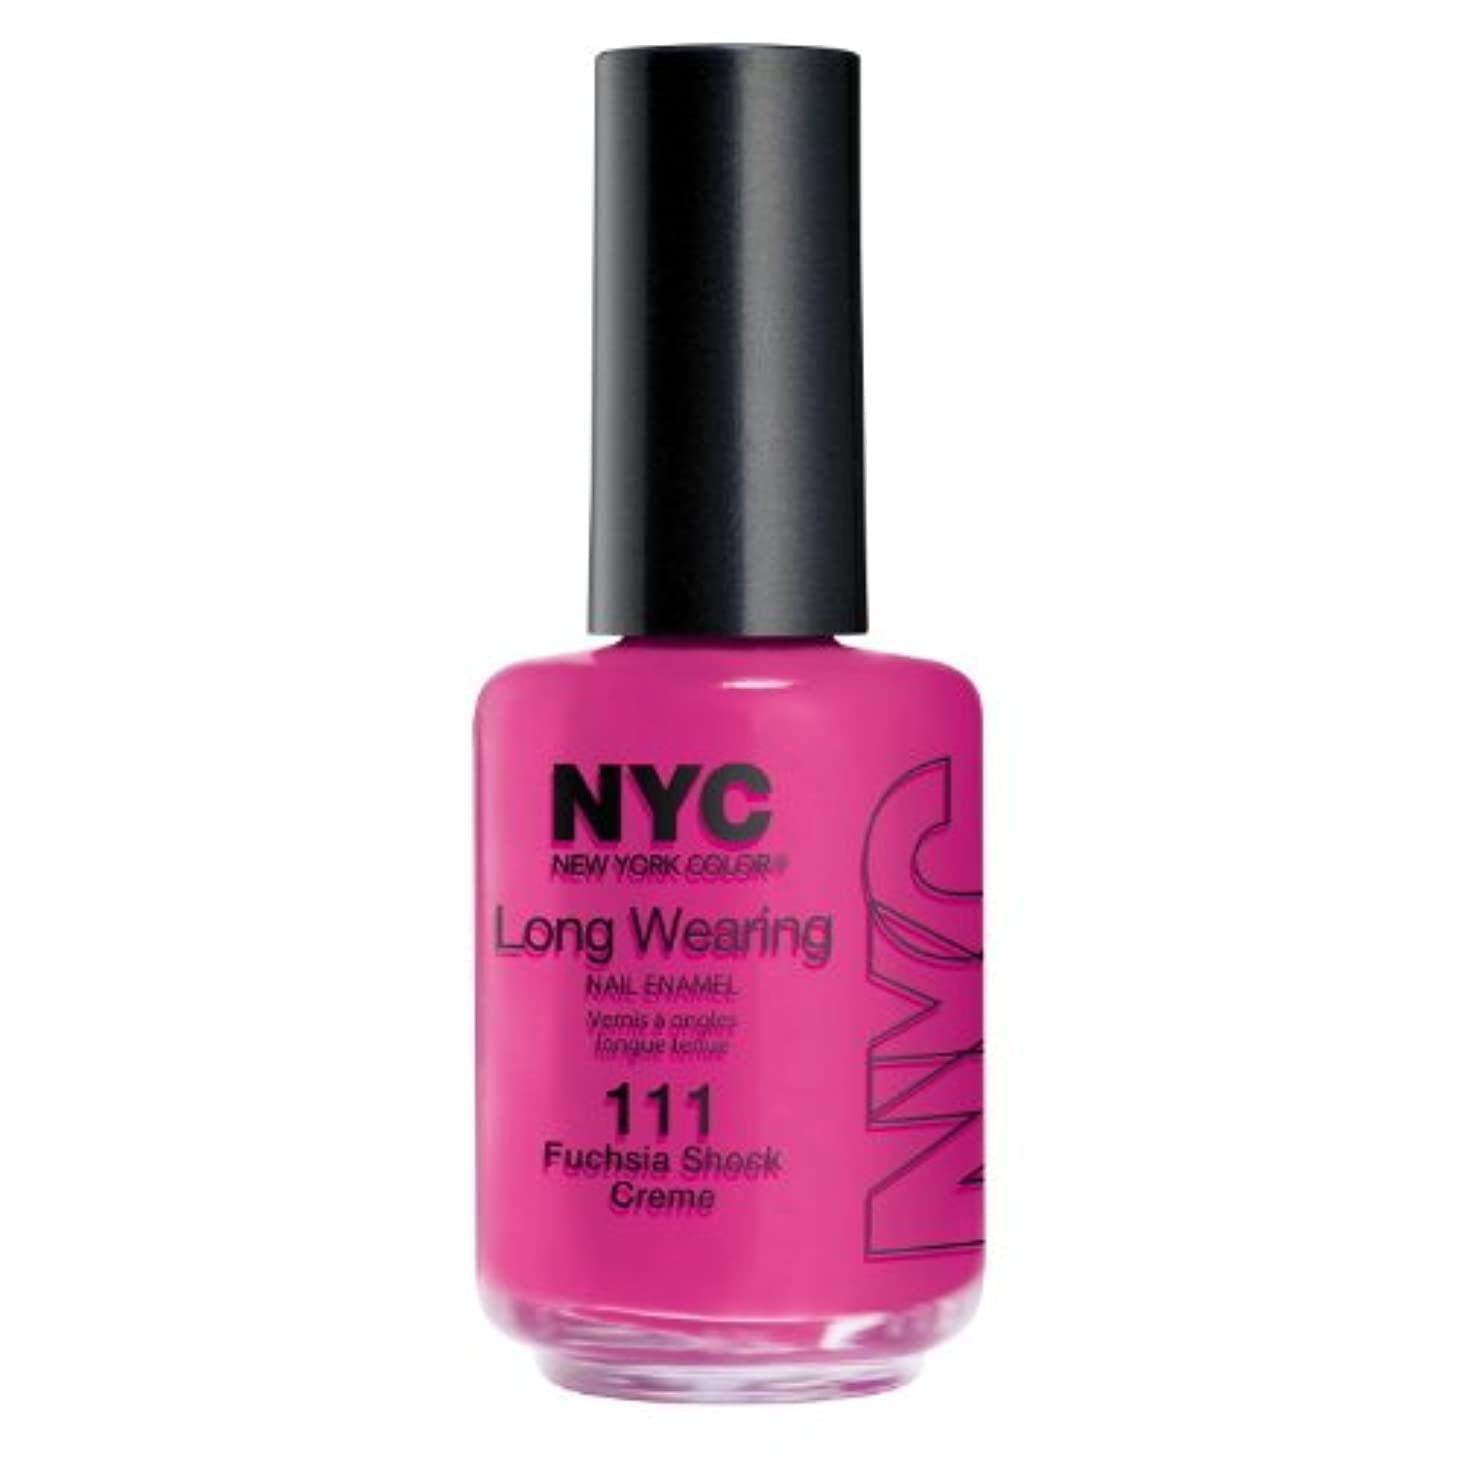 開梱待つ横たわる(6 Pack) NYC Long Wearing Nail Enamel - Fuchisia Shock Creme (並行輸入品)